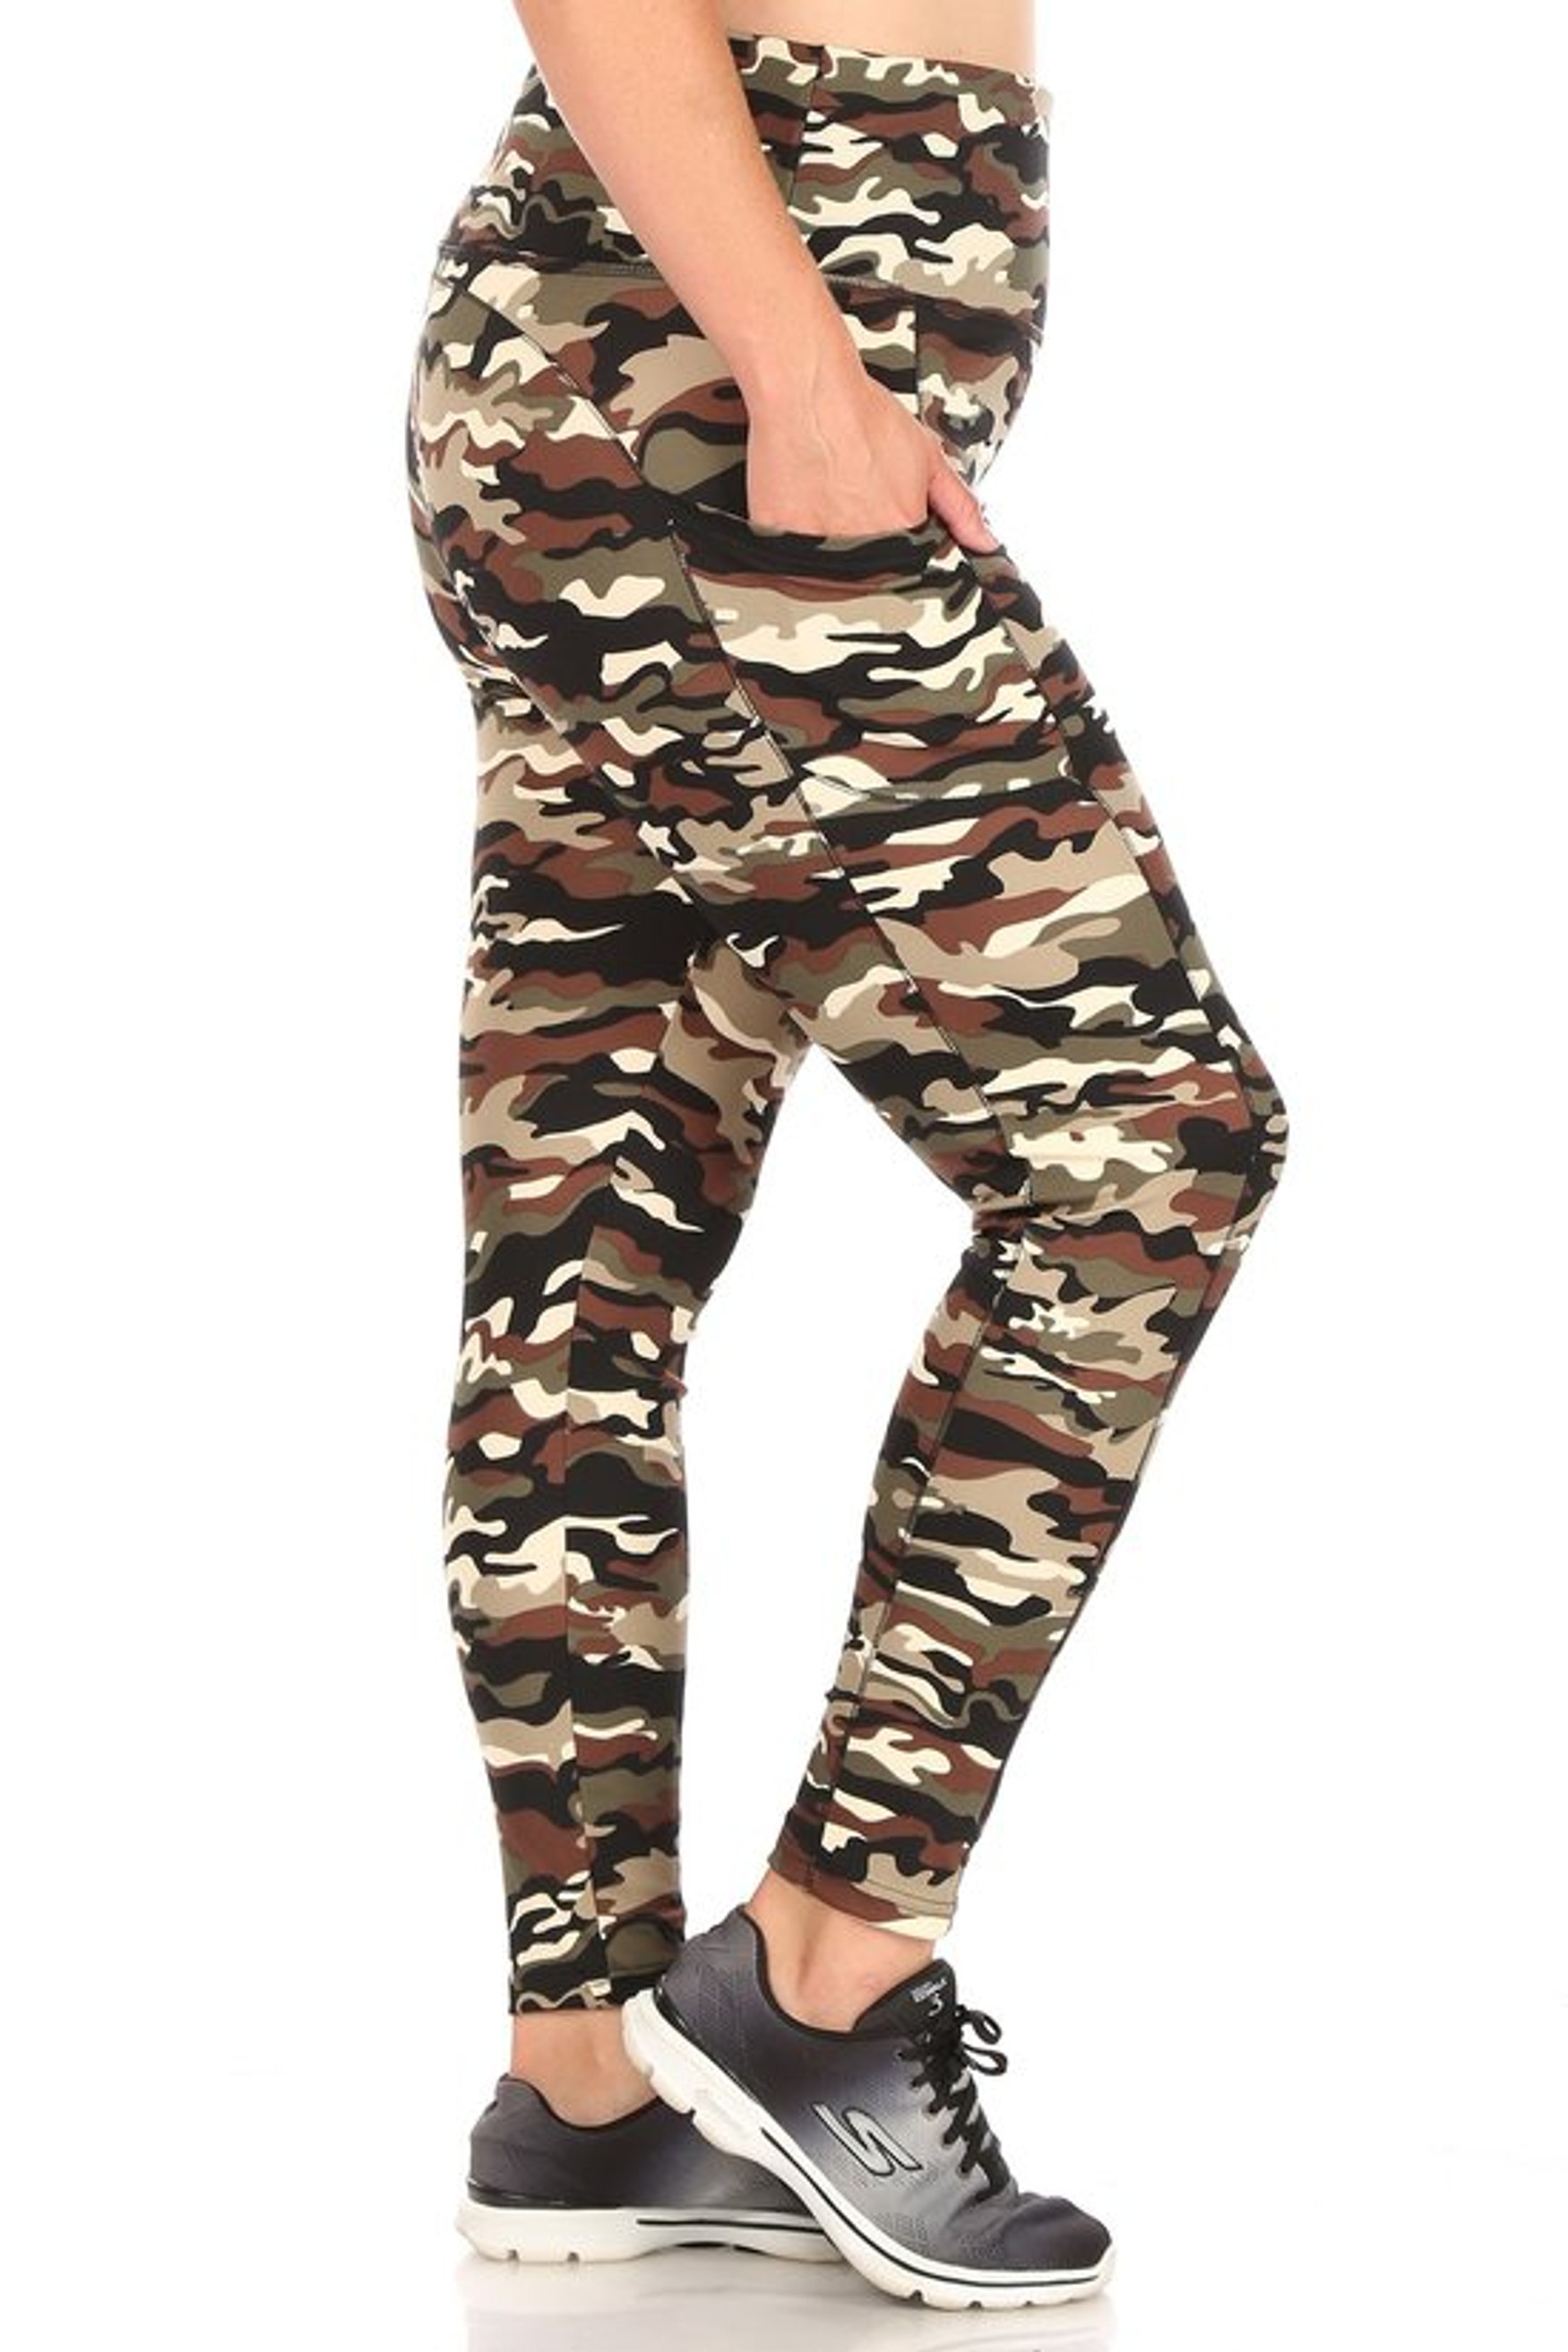 Camouflage Sport Plus Size Leggings with Side Pocket